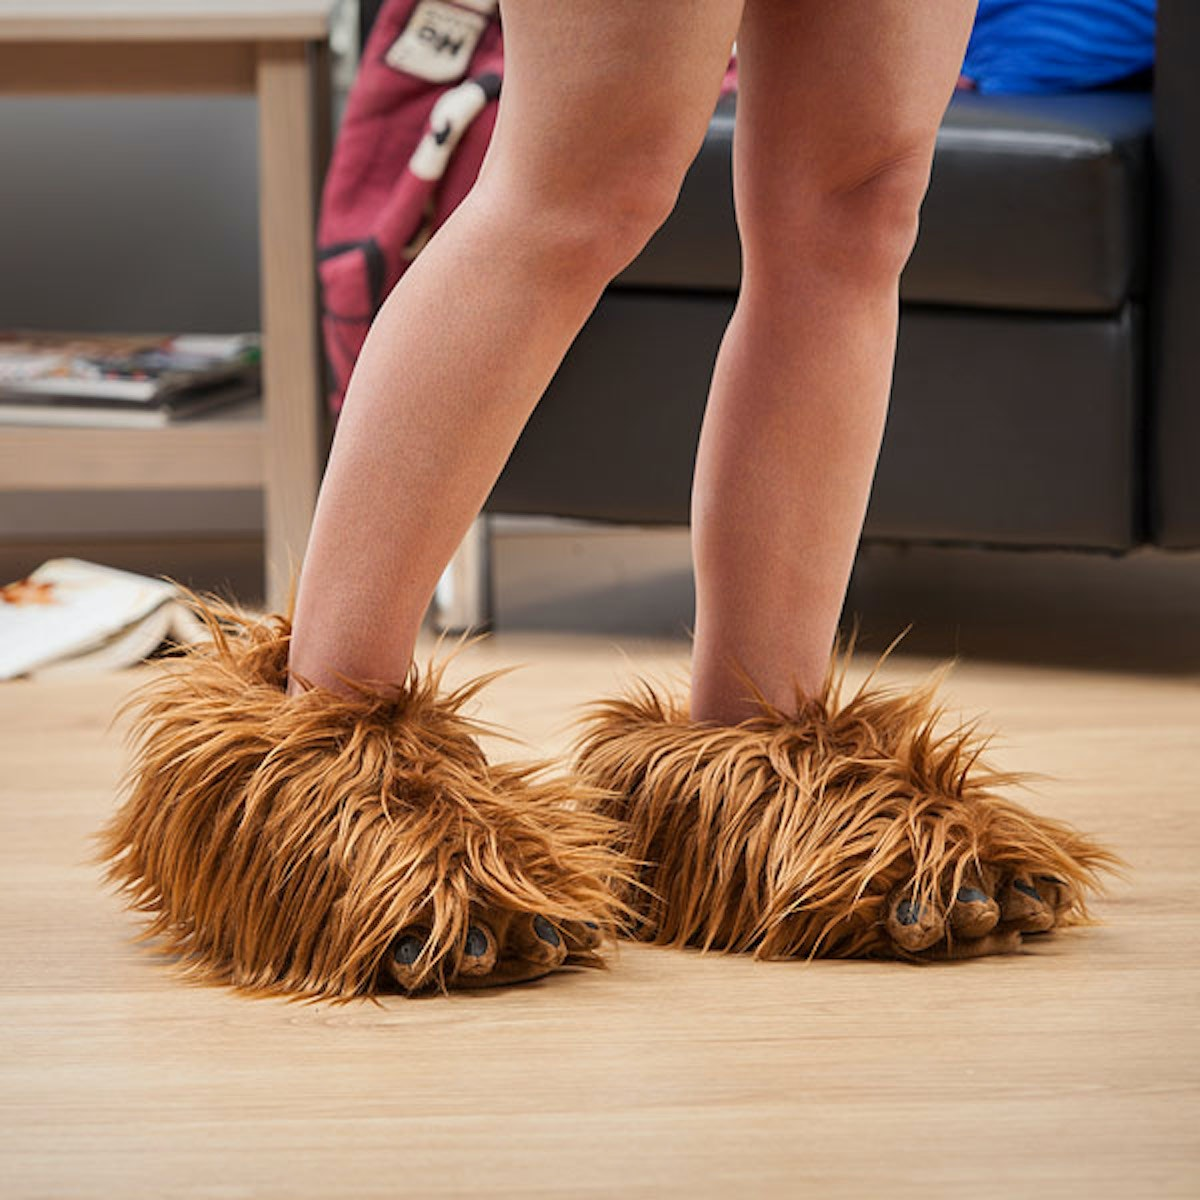 These gloriously noisy Chewbacca slippers